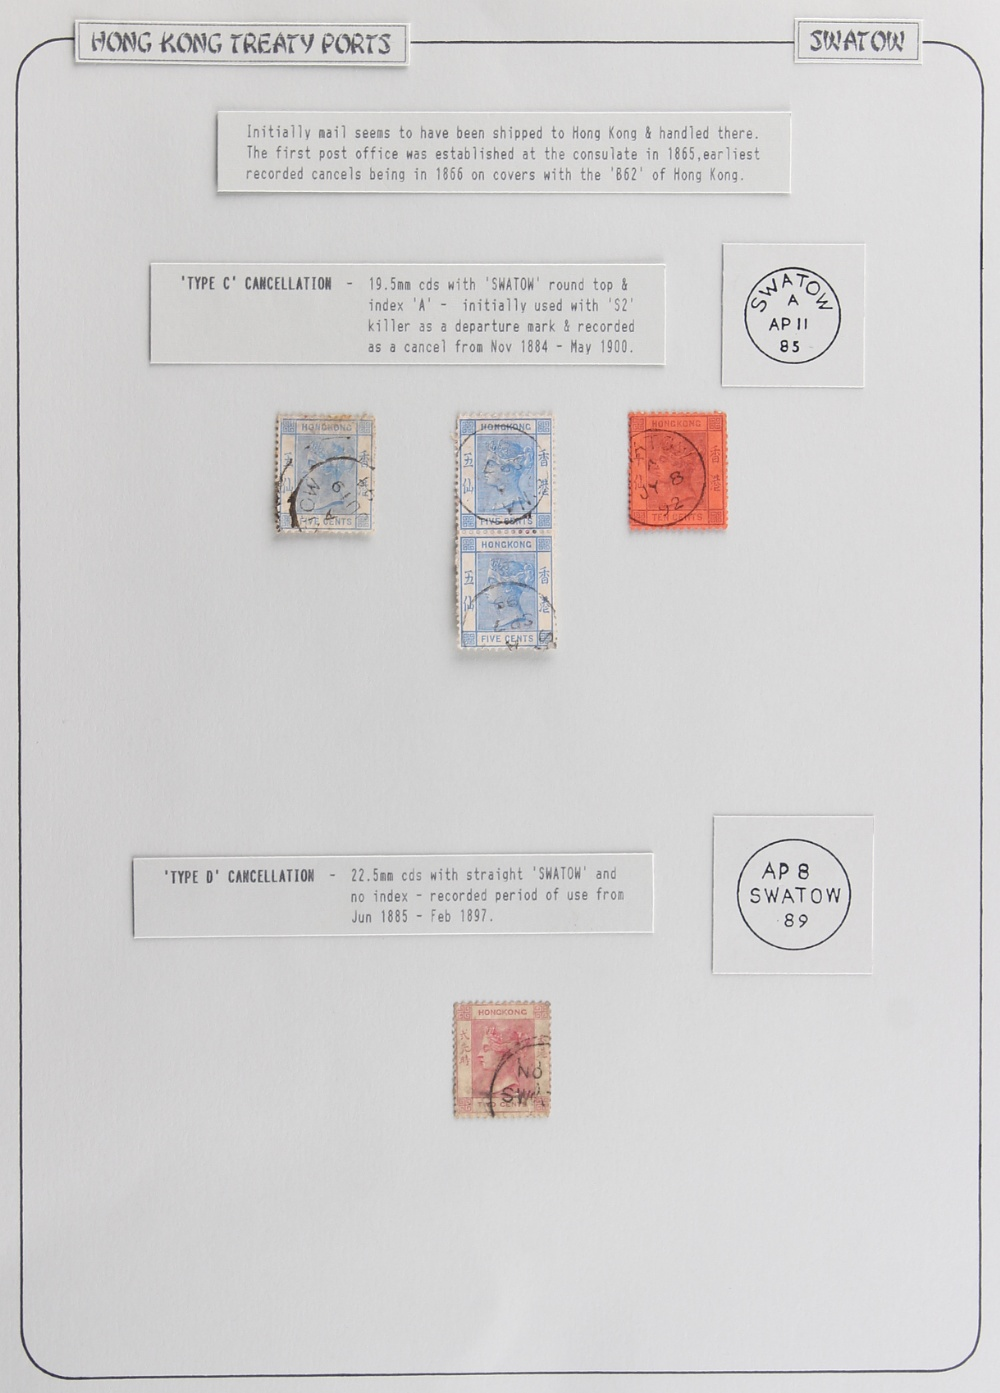 The Basil Lewis (1927-2019) collection of stamps - Hong Kong: Treaty Ports - Swatow cds types on